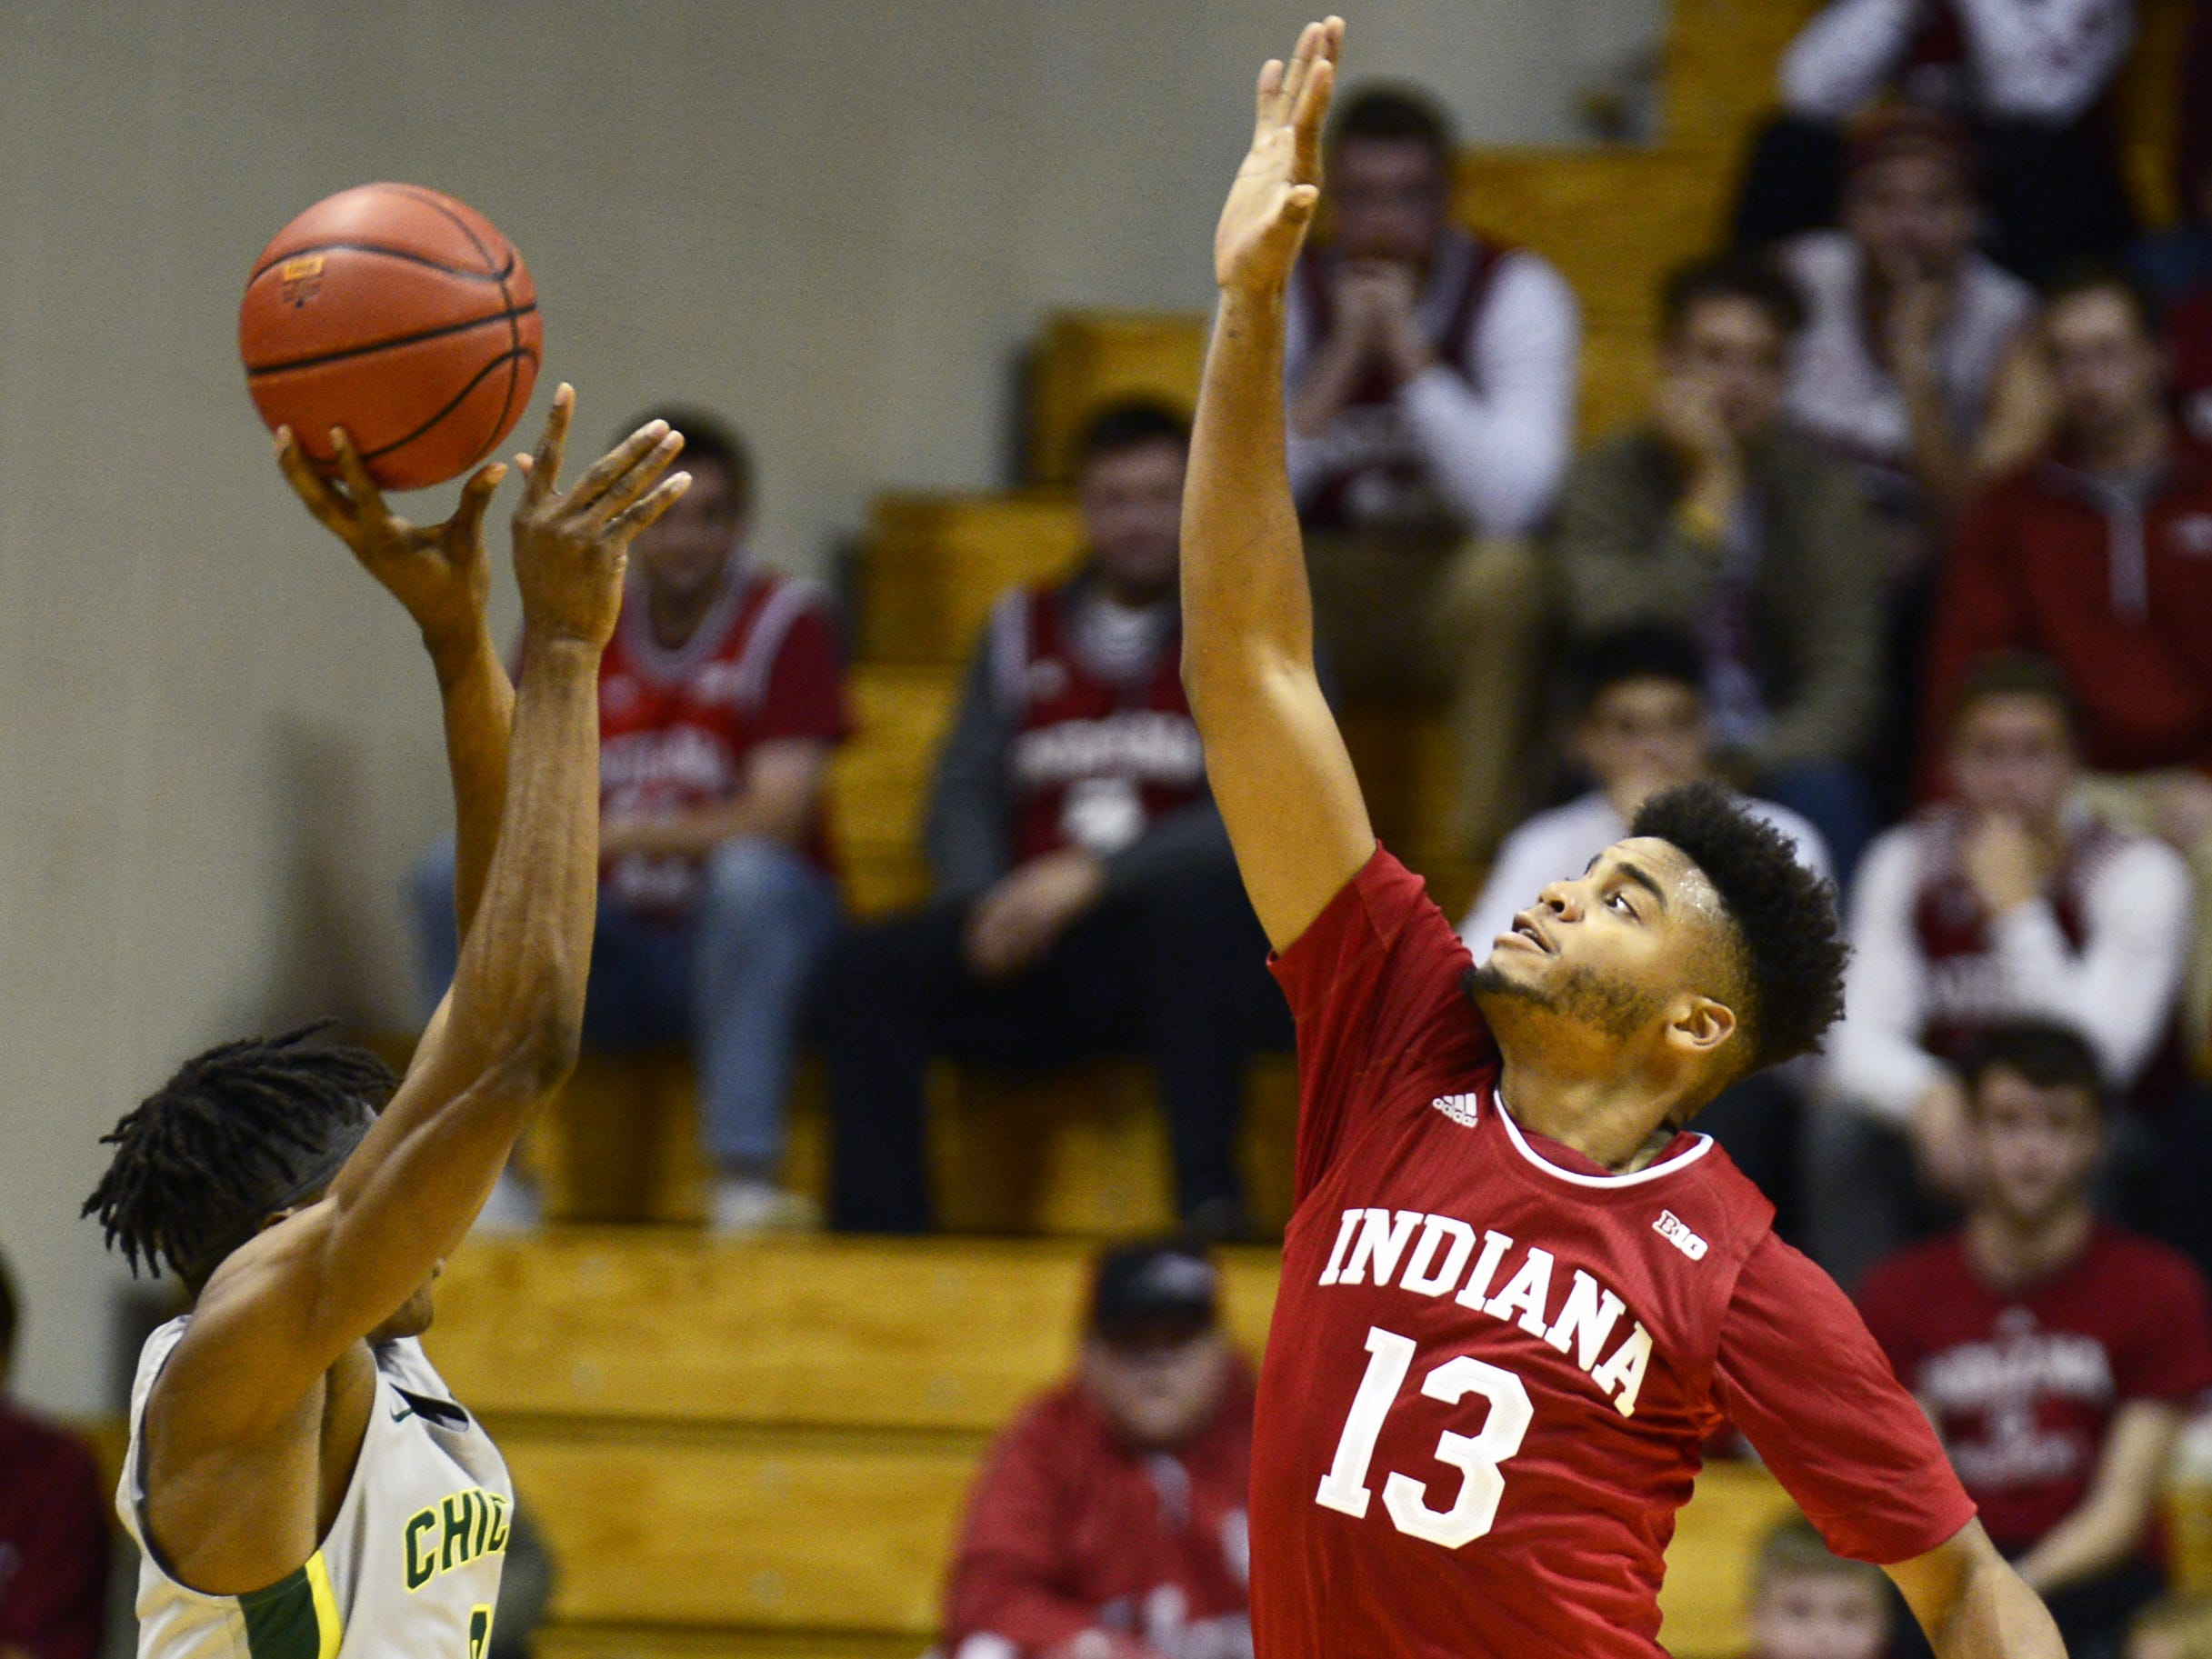 Indiana Hoosiers forward Juwan Morgan (13) contests a shot during the game against Chicago State at Simon Skjodt Assembly Hall in Bloomington, Ind., on Tuesday, Nov. 6, 2018.